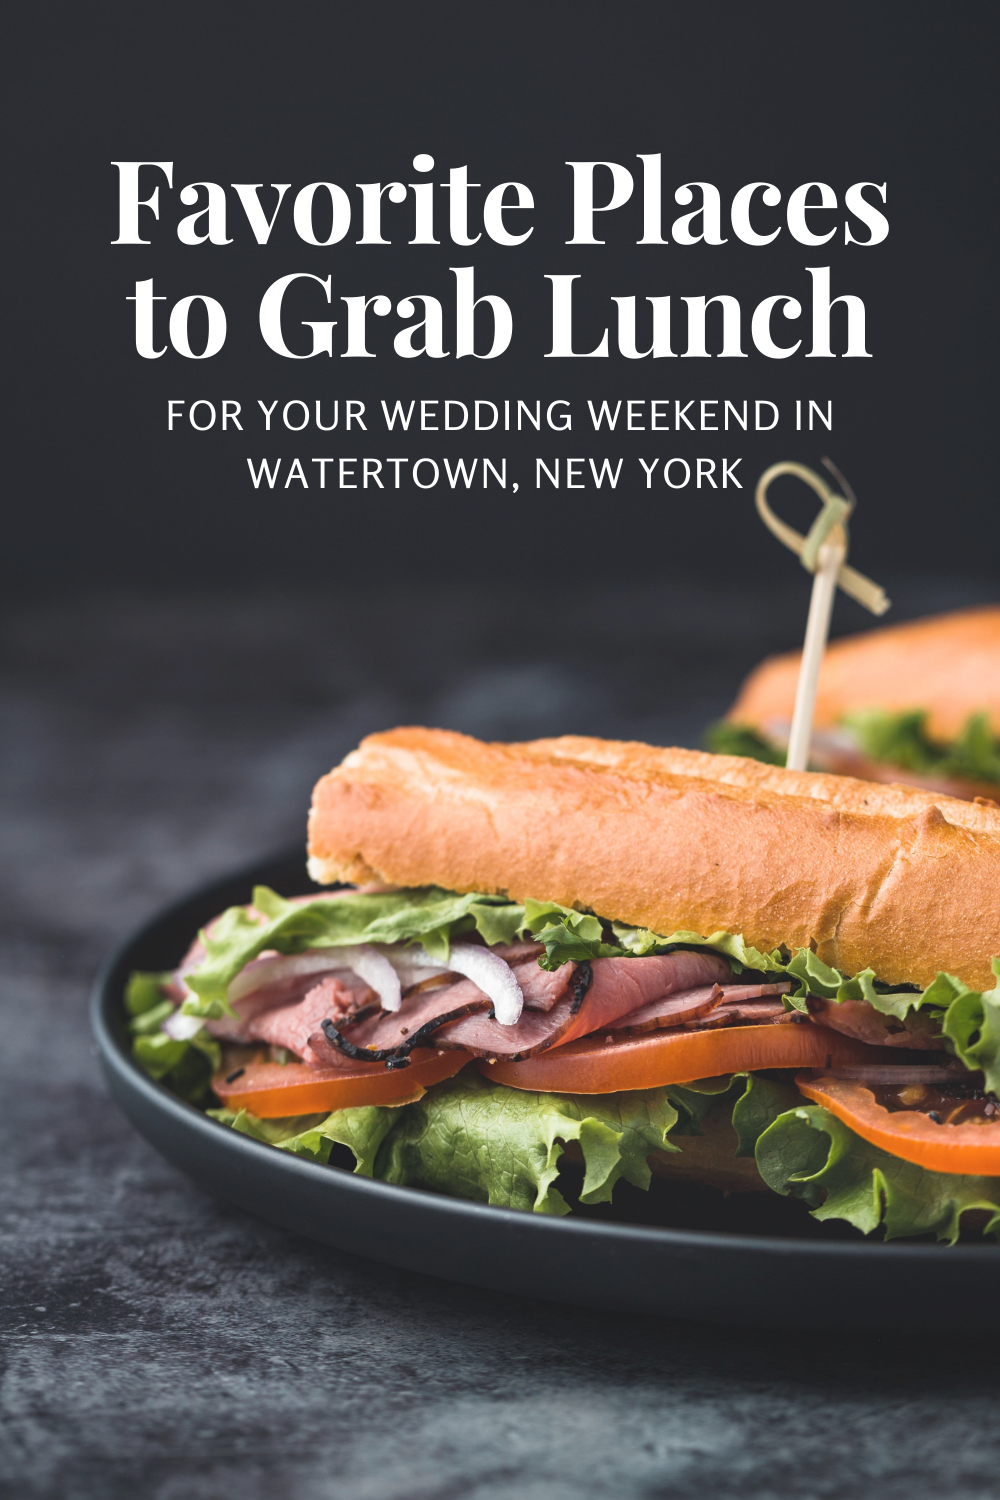 Lunch Spots for your Wedding Weekend in Watertown, New York